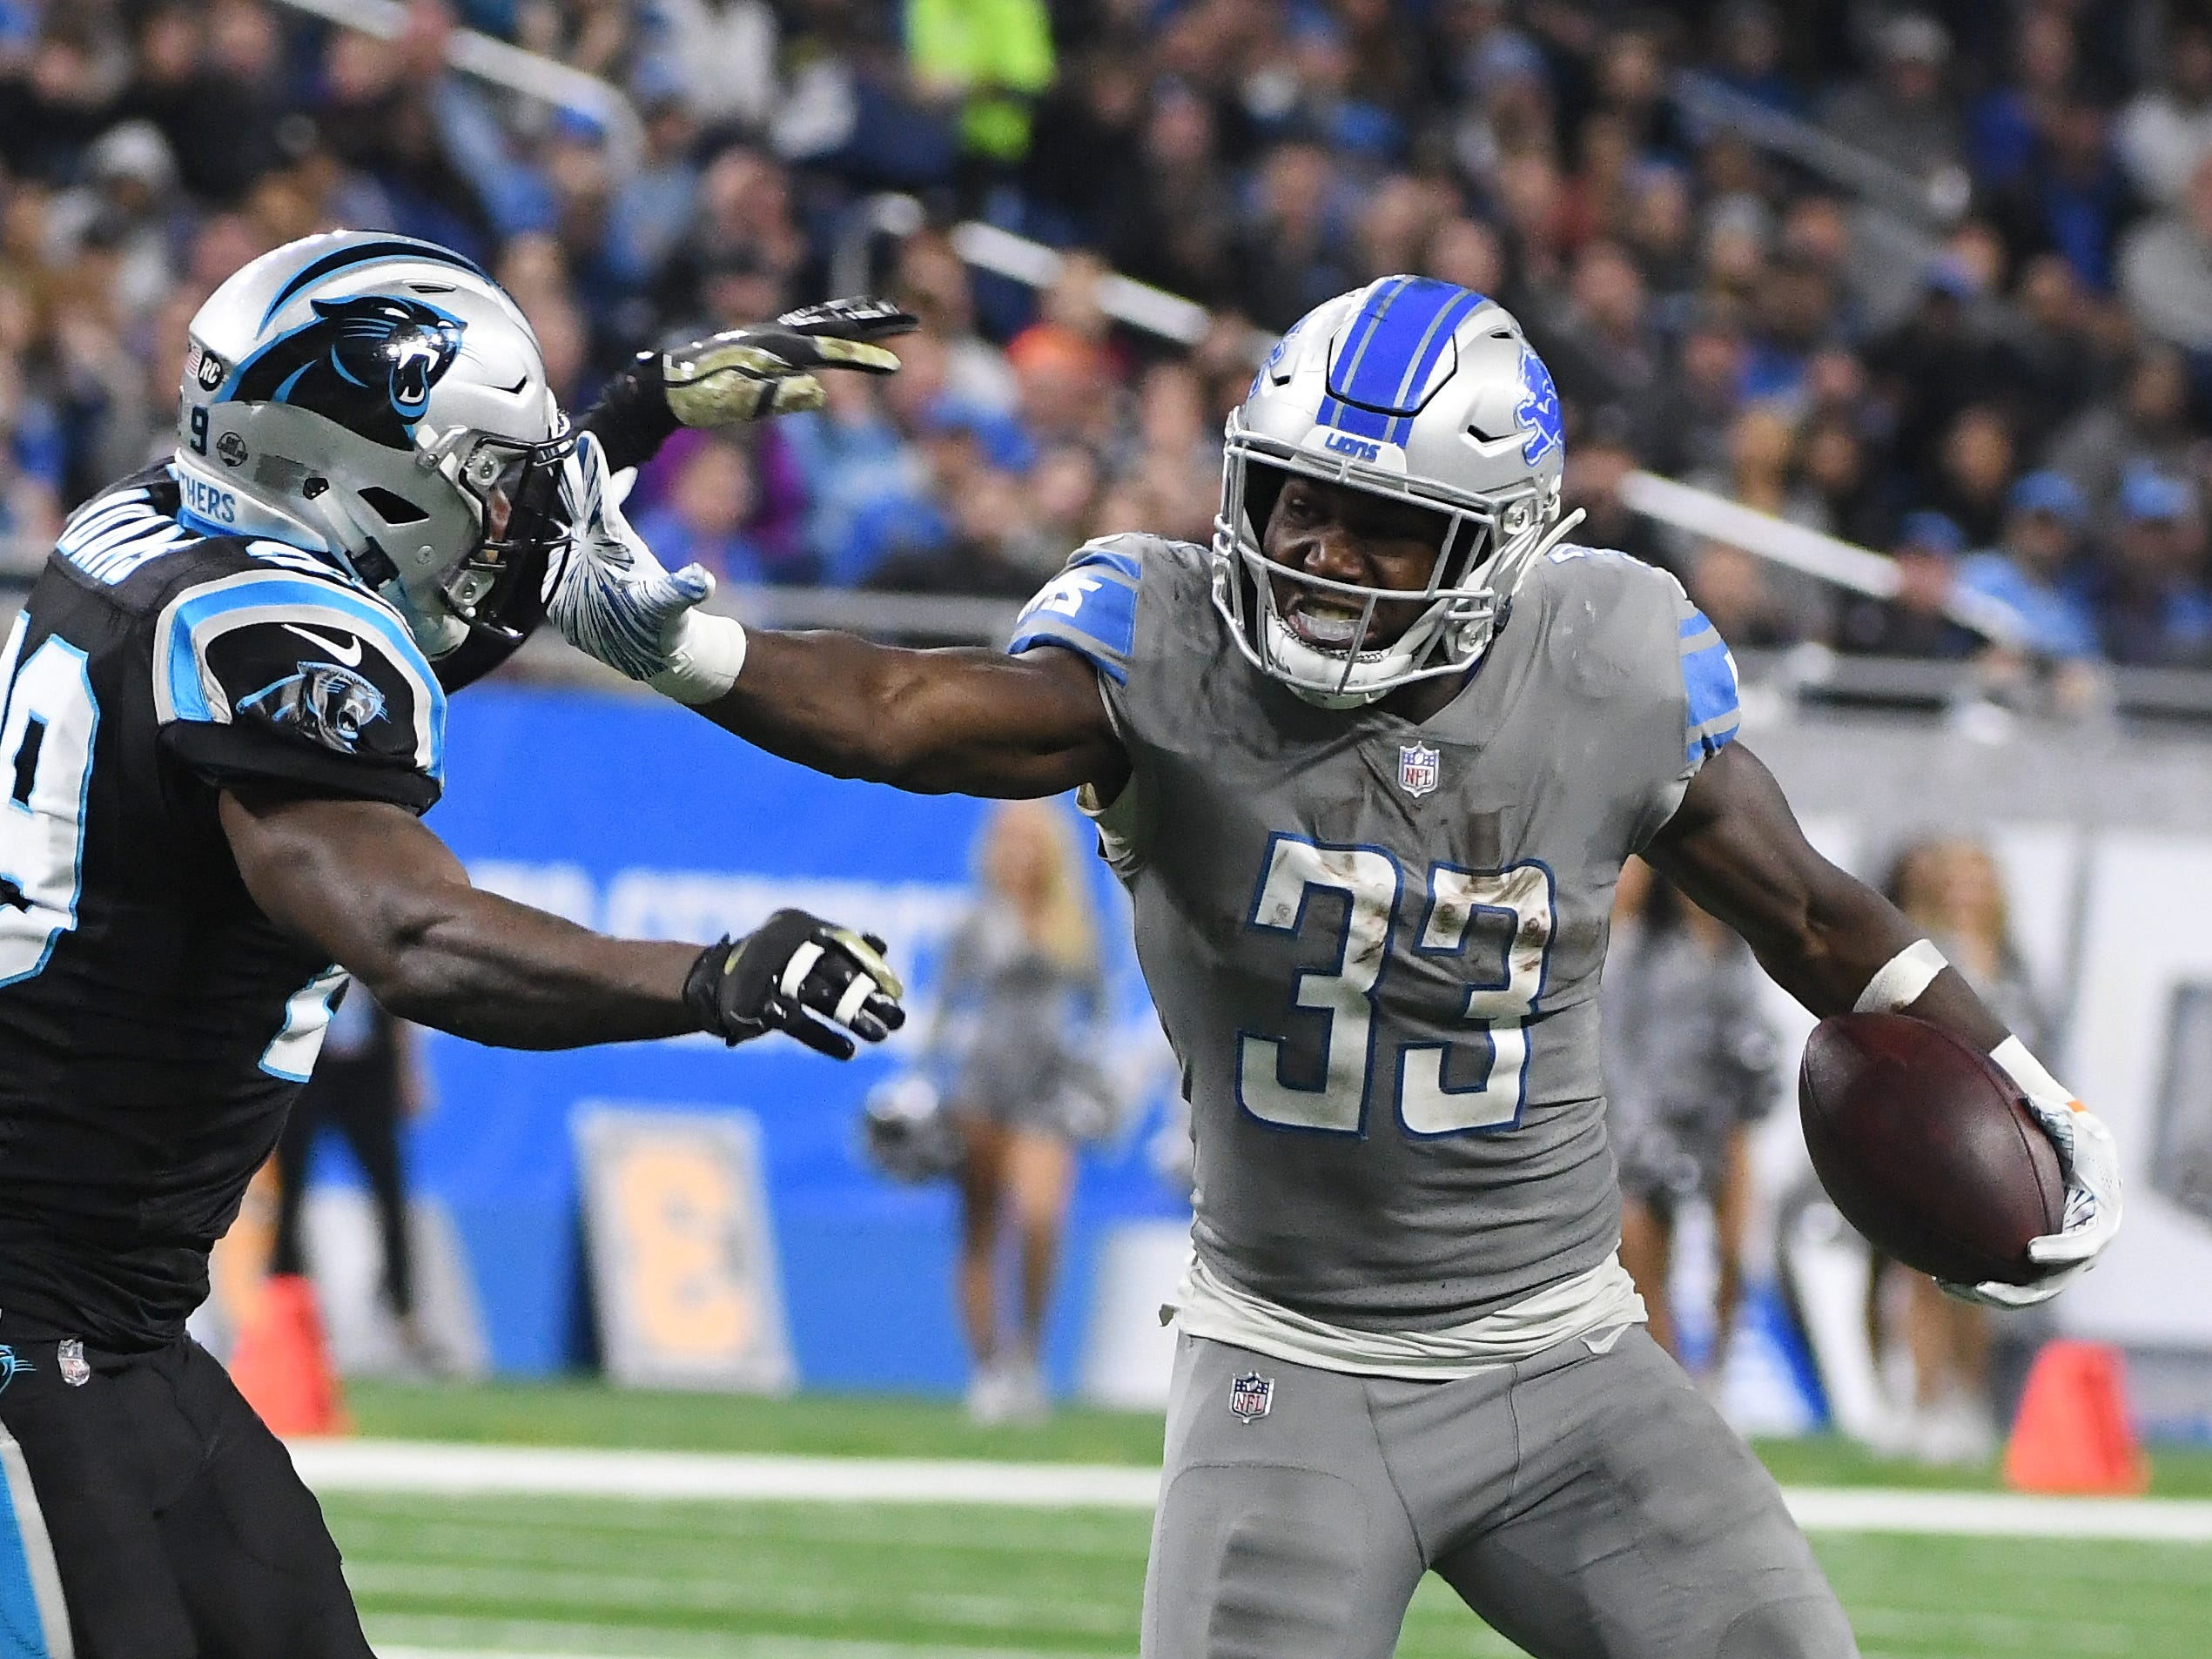 RB Kerryon Johnson: Johnson was everything the Lions needed him to be and then some before a knee injury sidelined him the final five weeks. The rookie out of Auburn ran with a mix of balance, vision and burst the organization hasn't seen in years. He averaged 5.4 yards per carry and showed better-than-expected skills as a receiver. Off the field, Johnson's football character was off the charts. He's an eager learner who doesn't shy away from accountability. Grade: A-